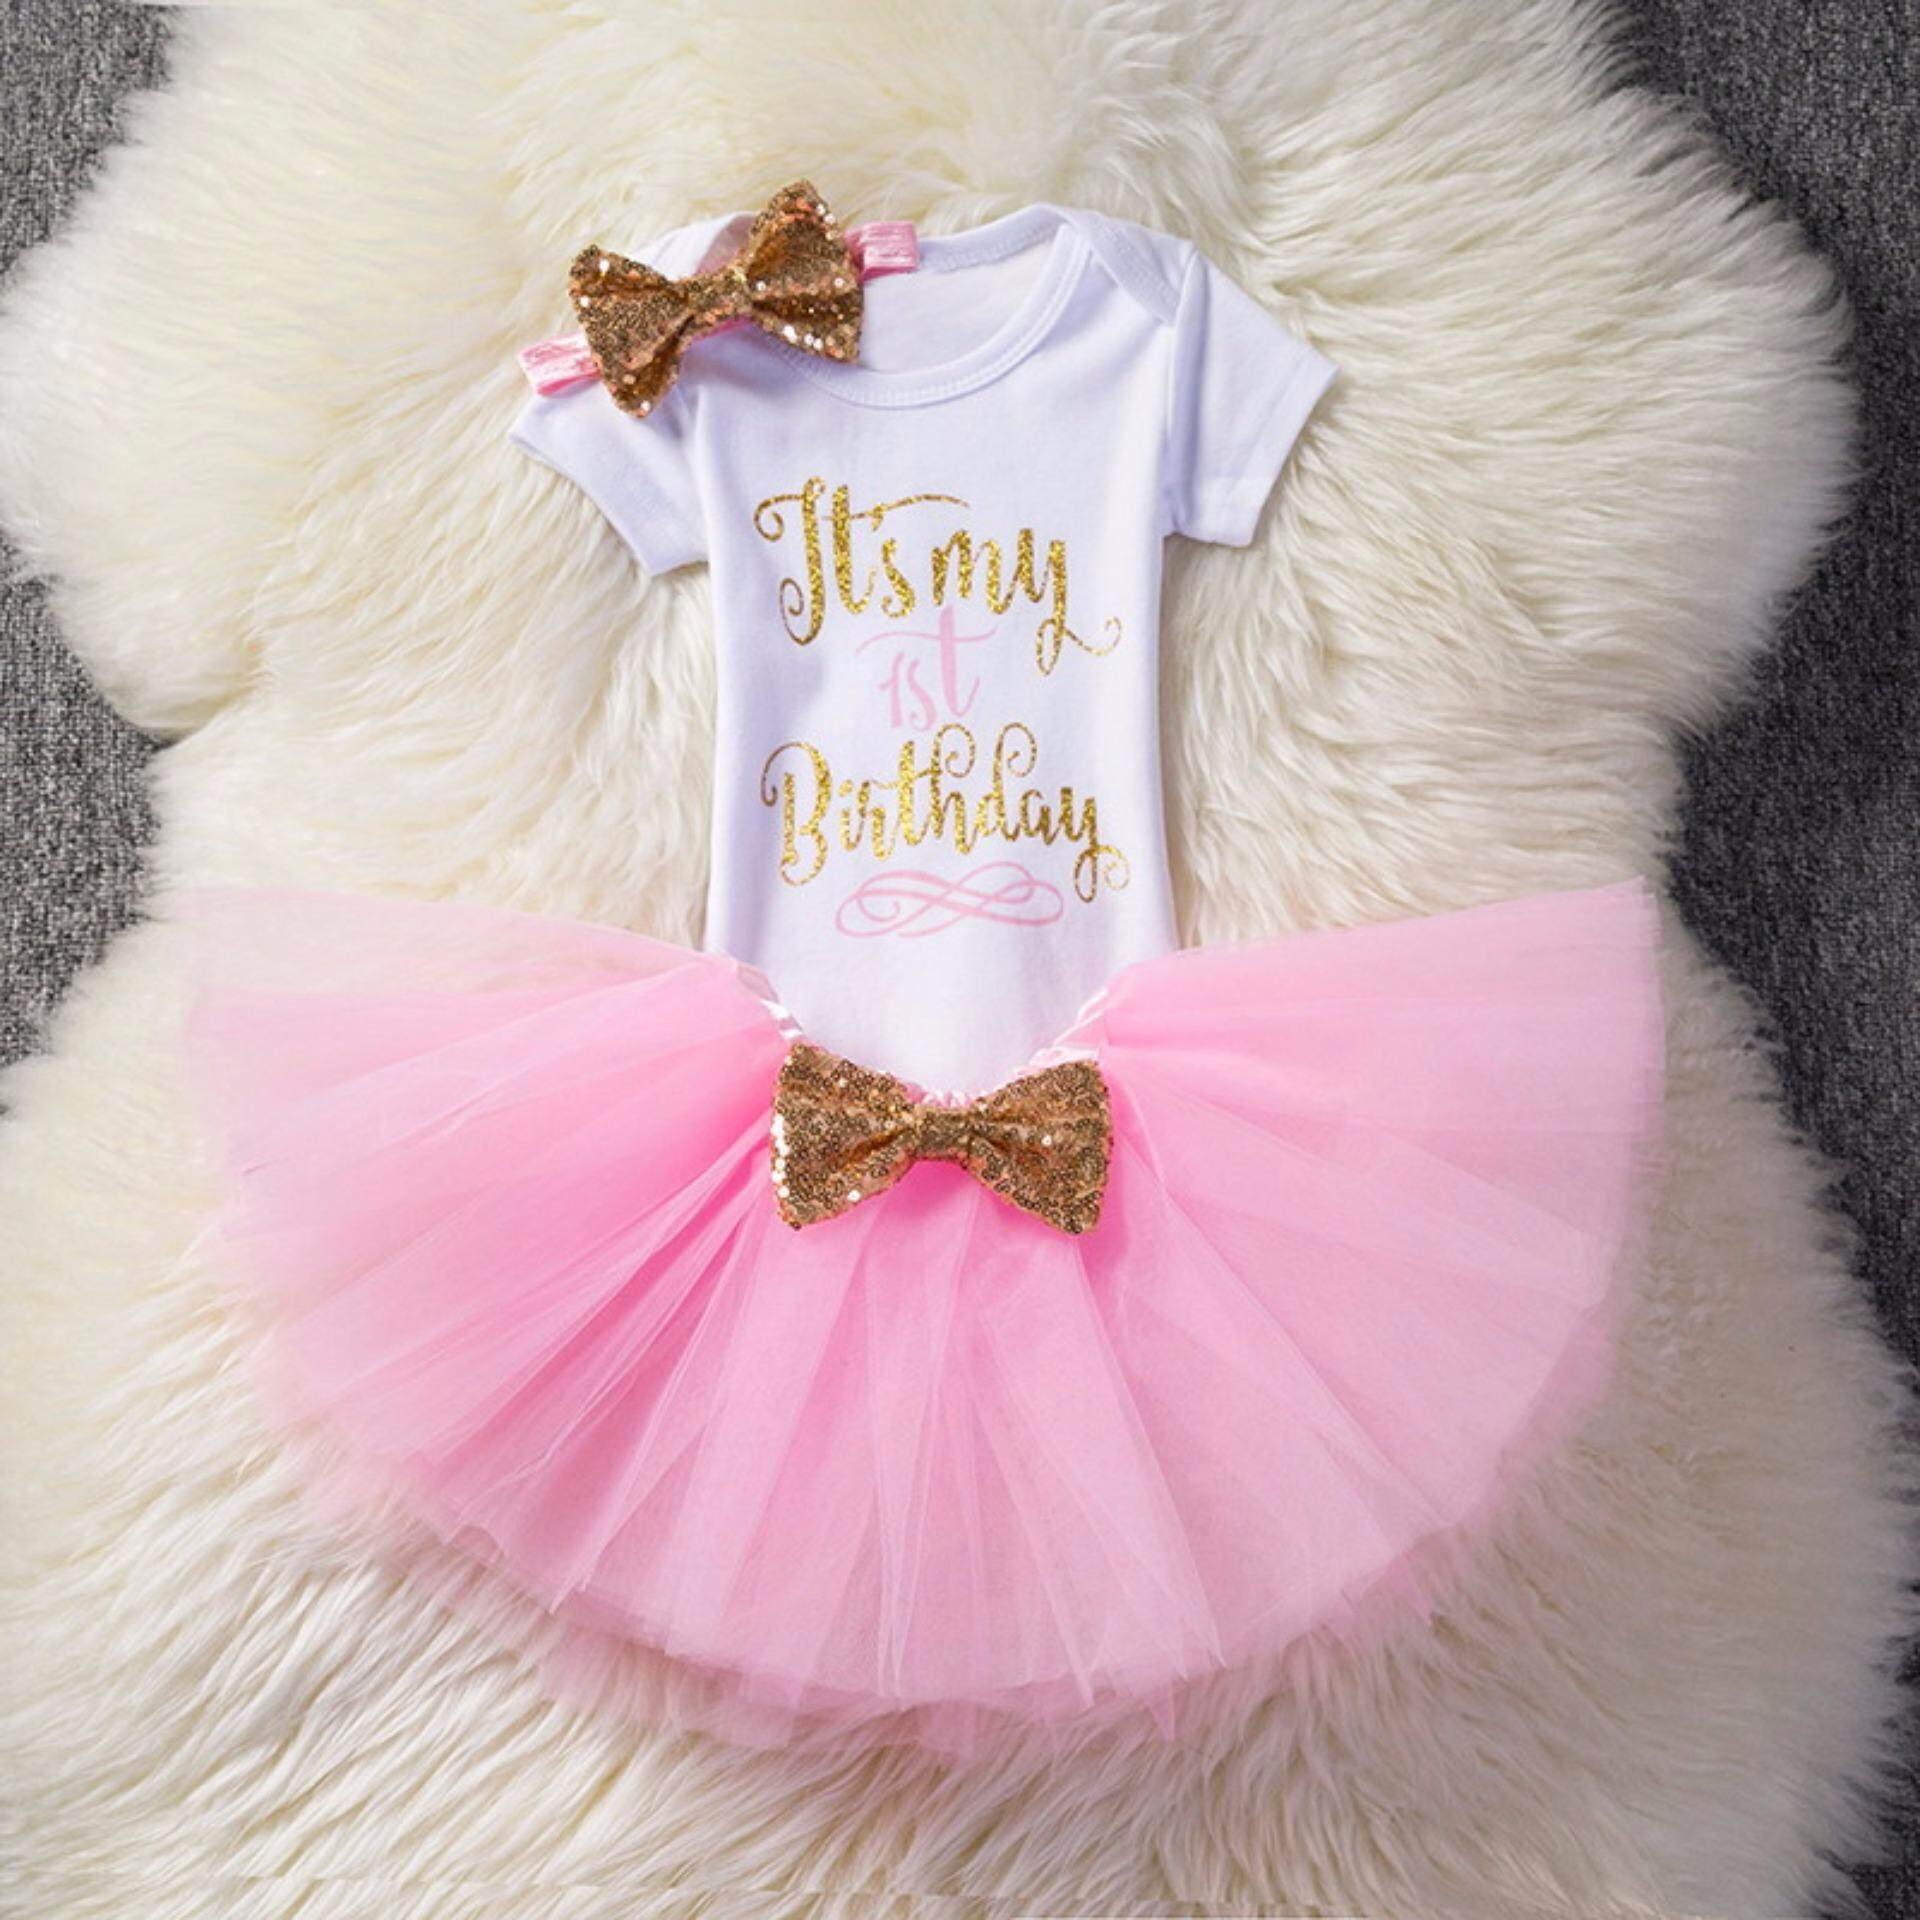 2nd Birthday Outfits For Toddlers Girl